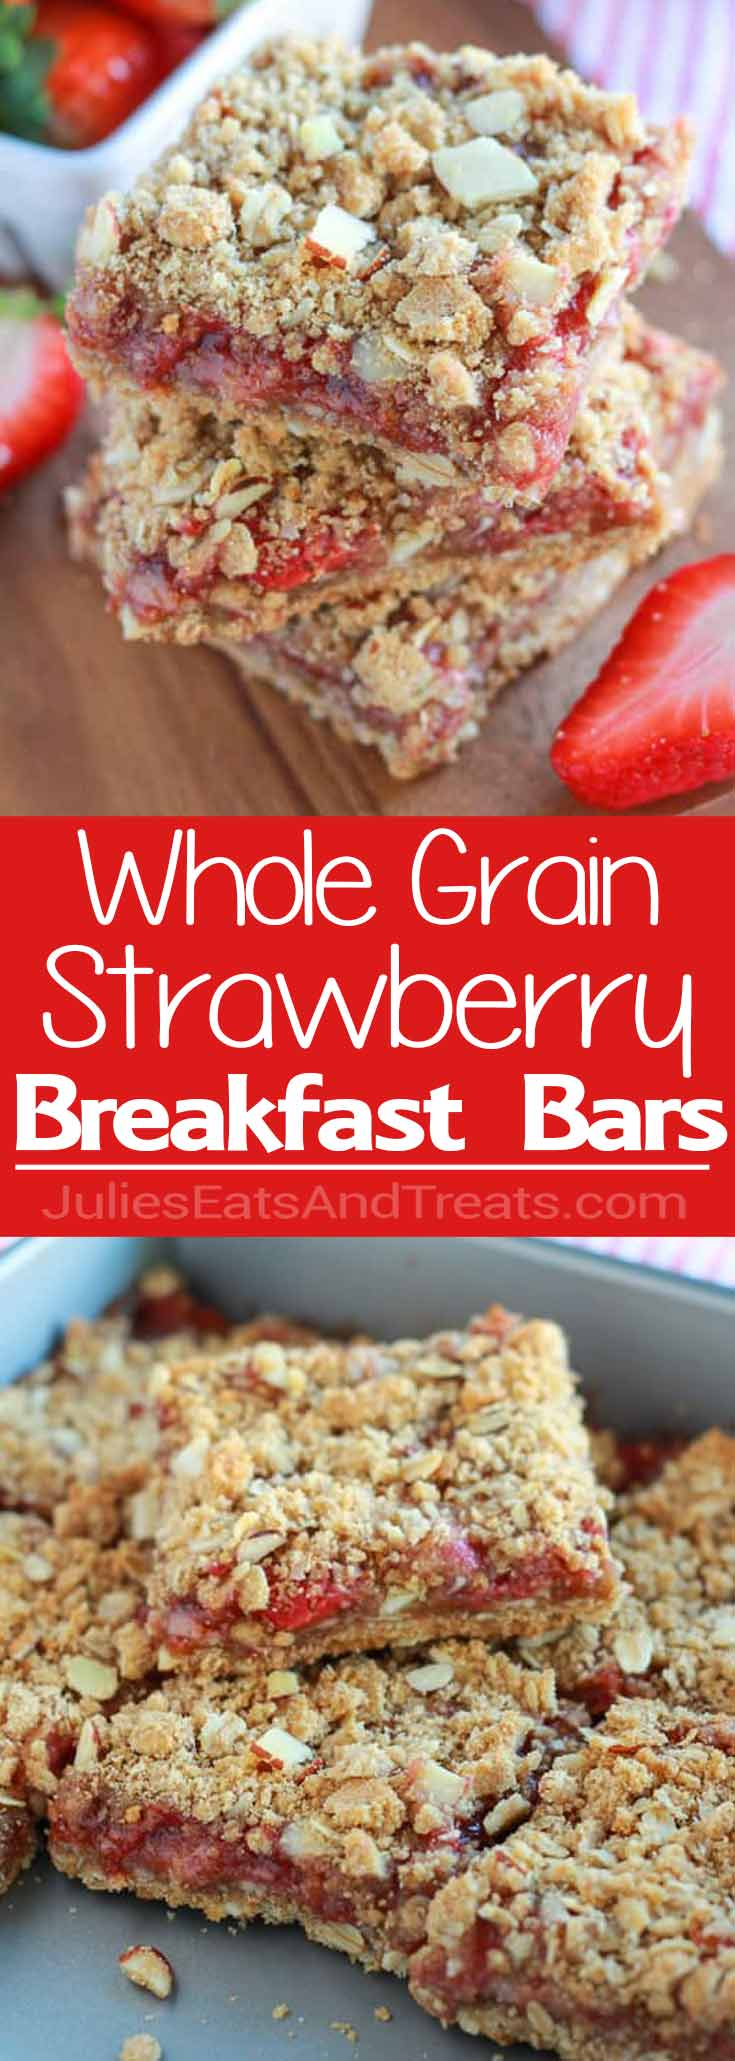 Whole Grain Strawberry Breakfast Bars - A simple recipe for whole grain breakfast bars made with oats and almonds, and filled with strawberries.